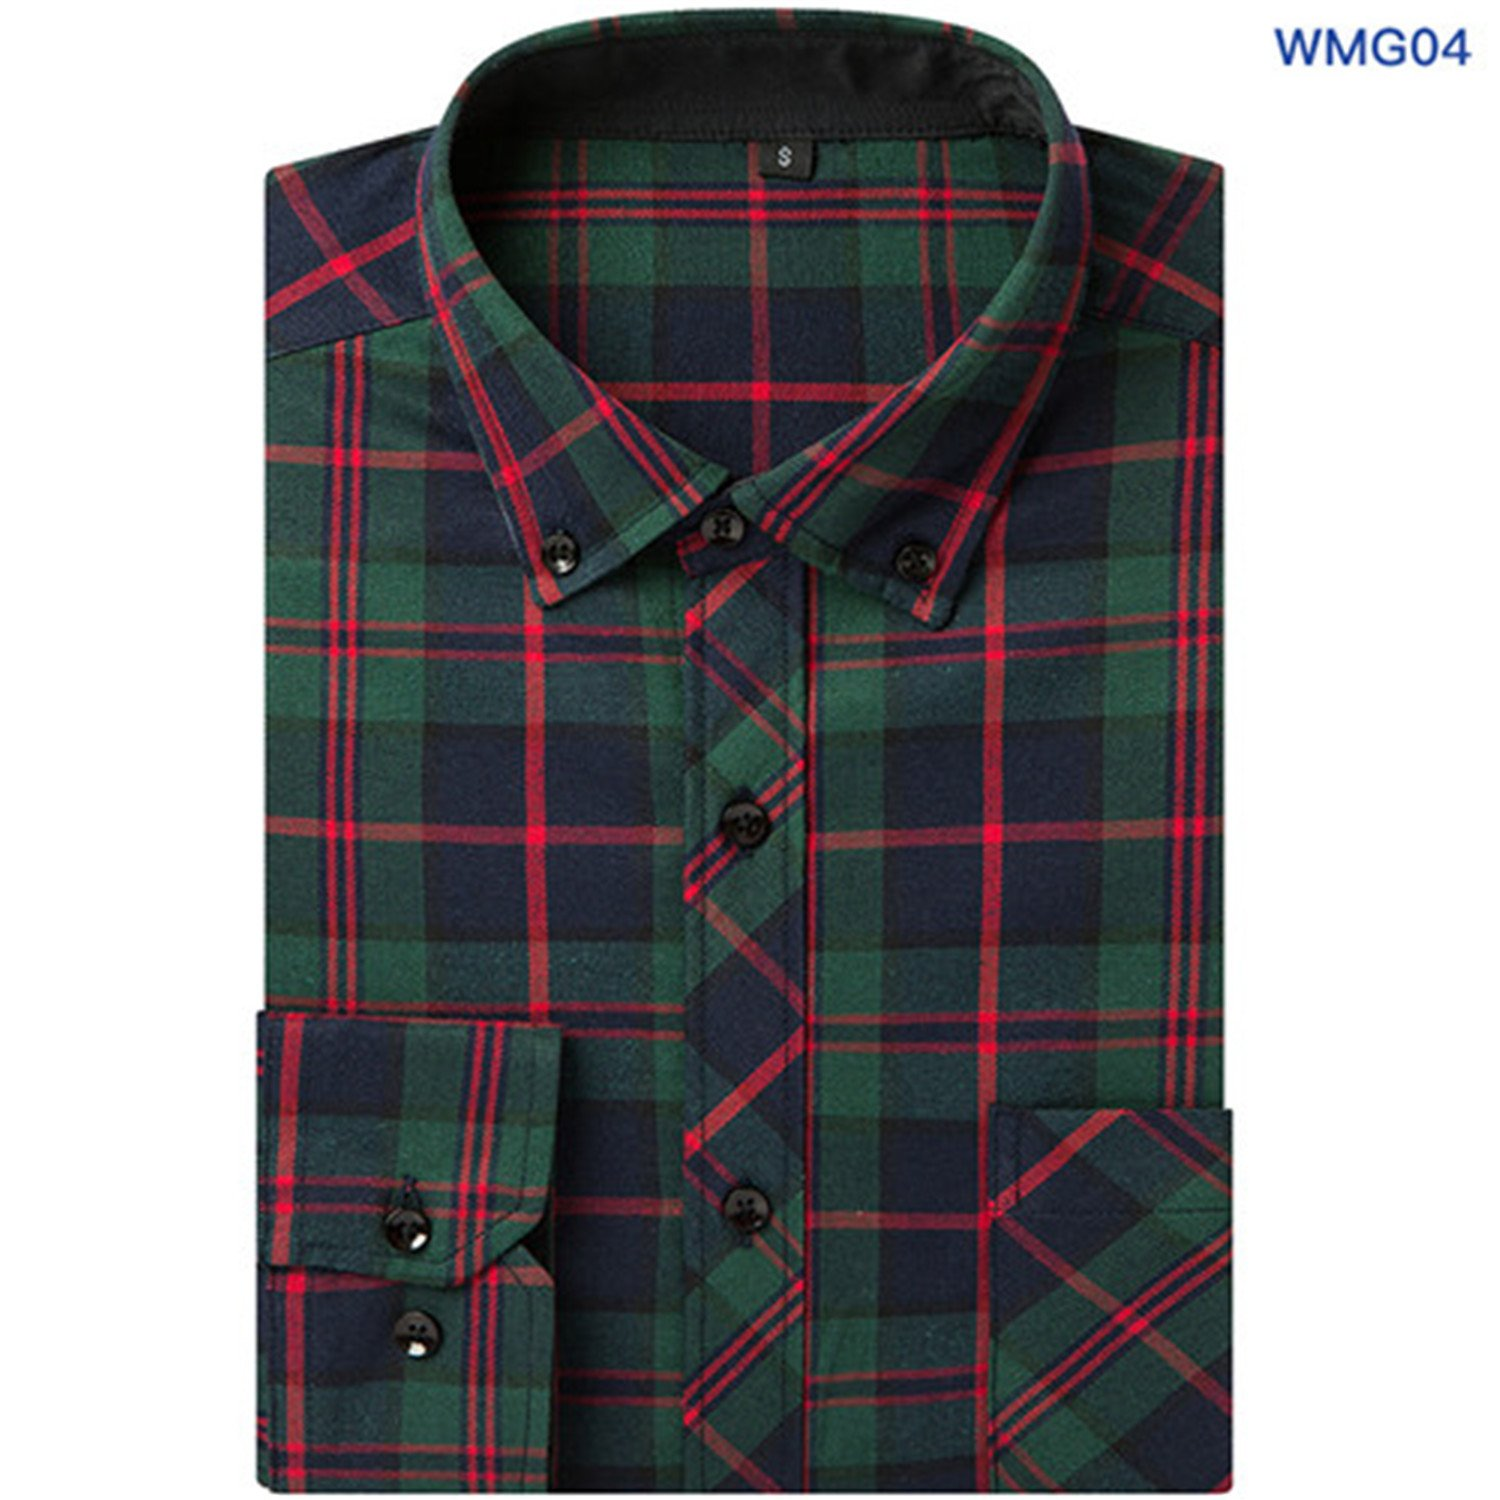 6f302fcb66b Are Flannel Shirts Business Casual